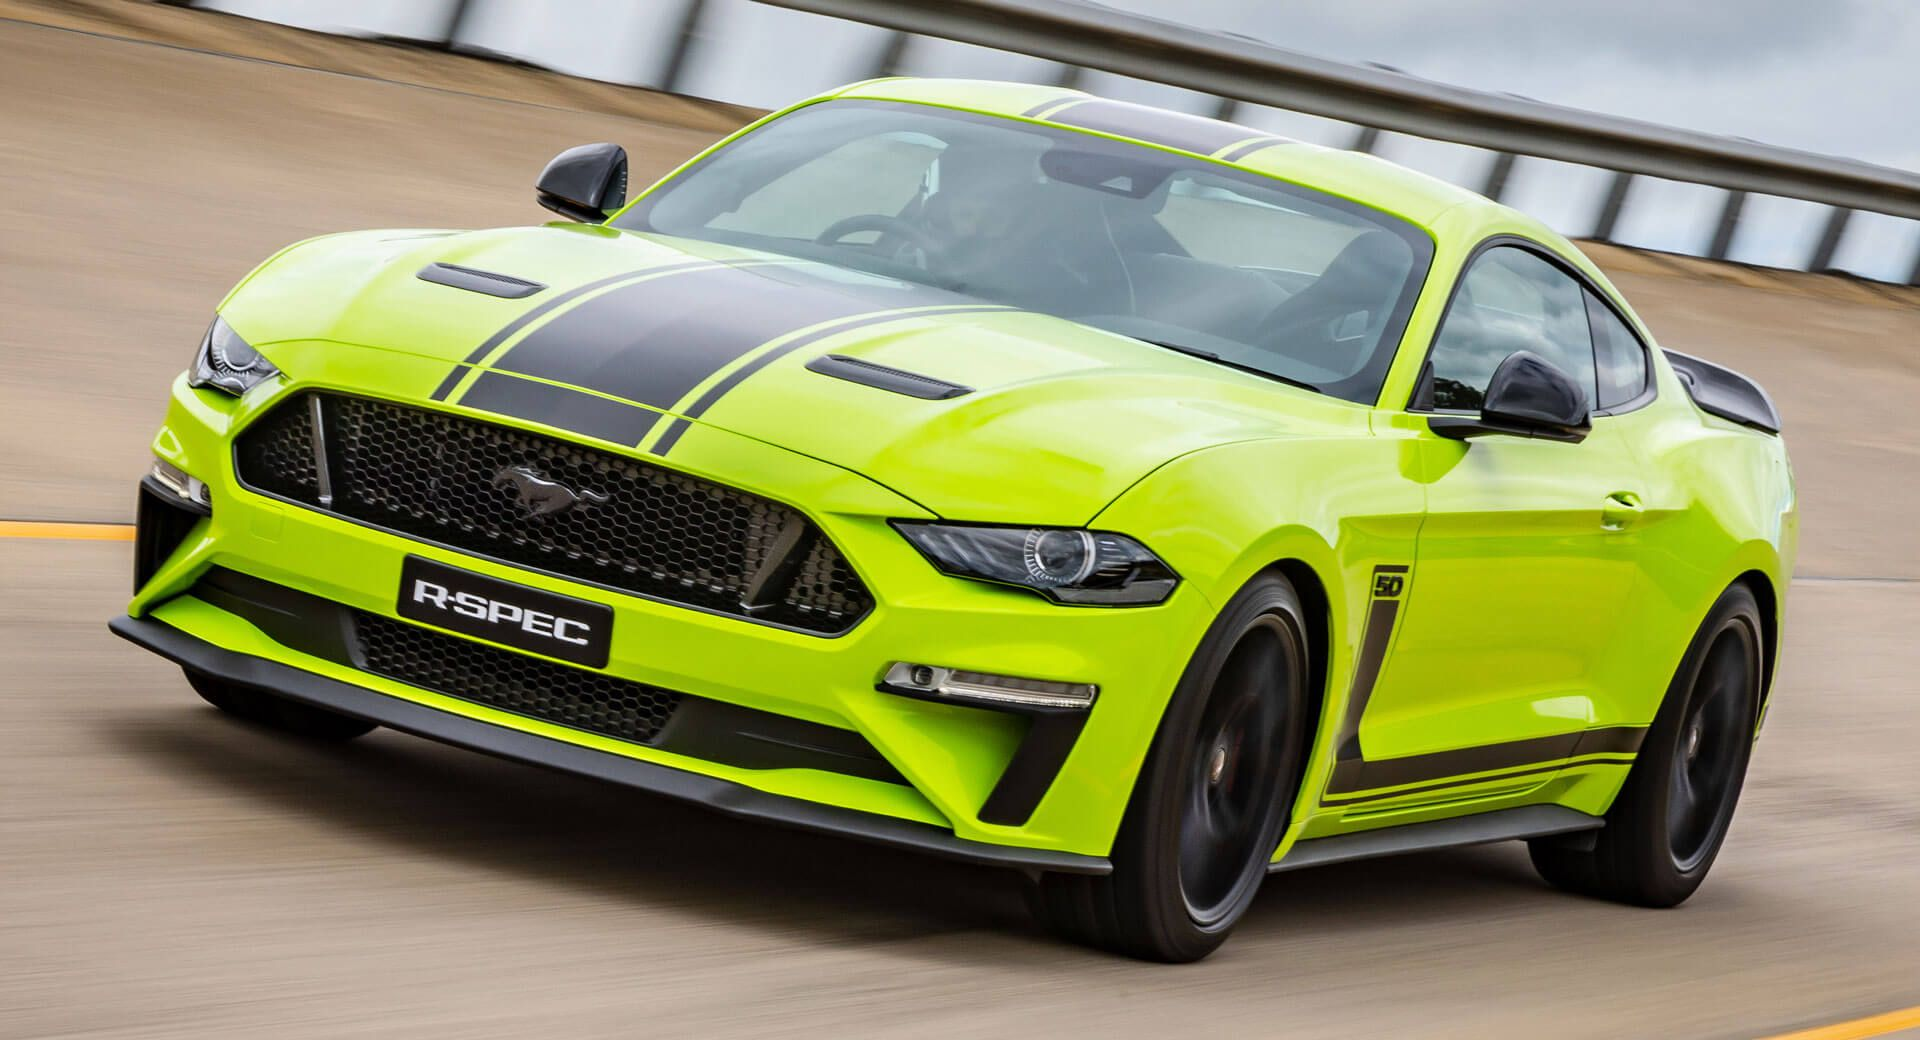 New 2020 Ford Mustang R Spec Limited Edition With Supercharged V8